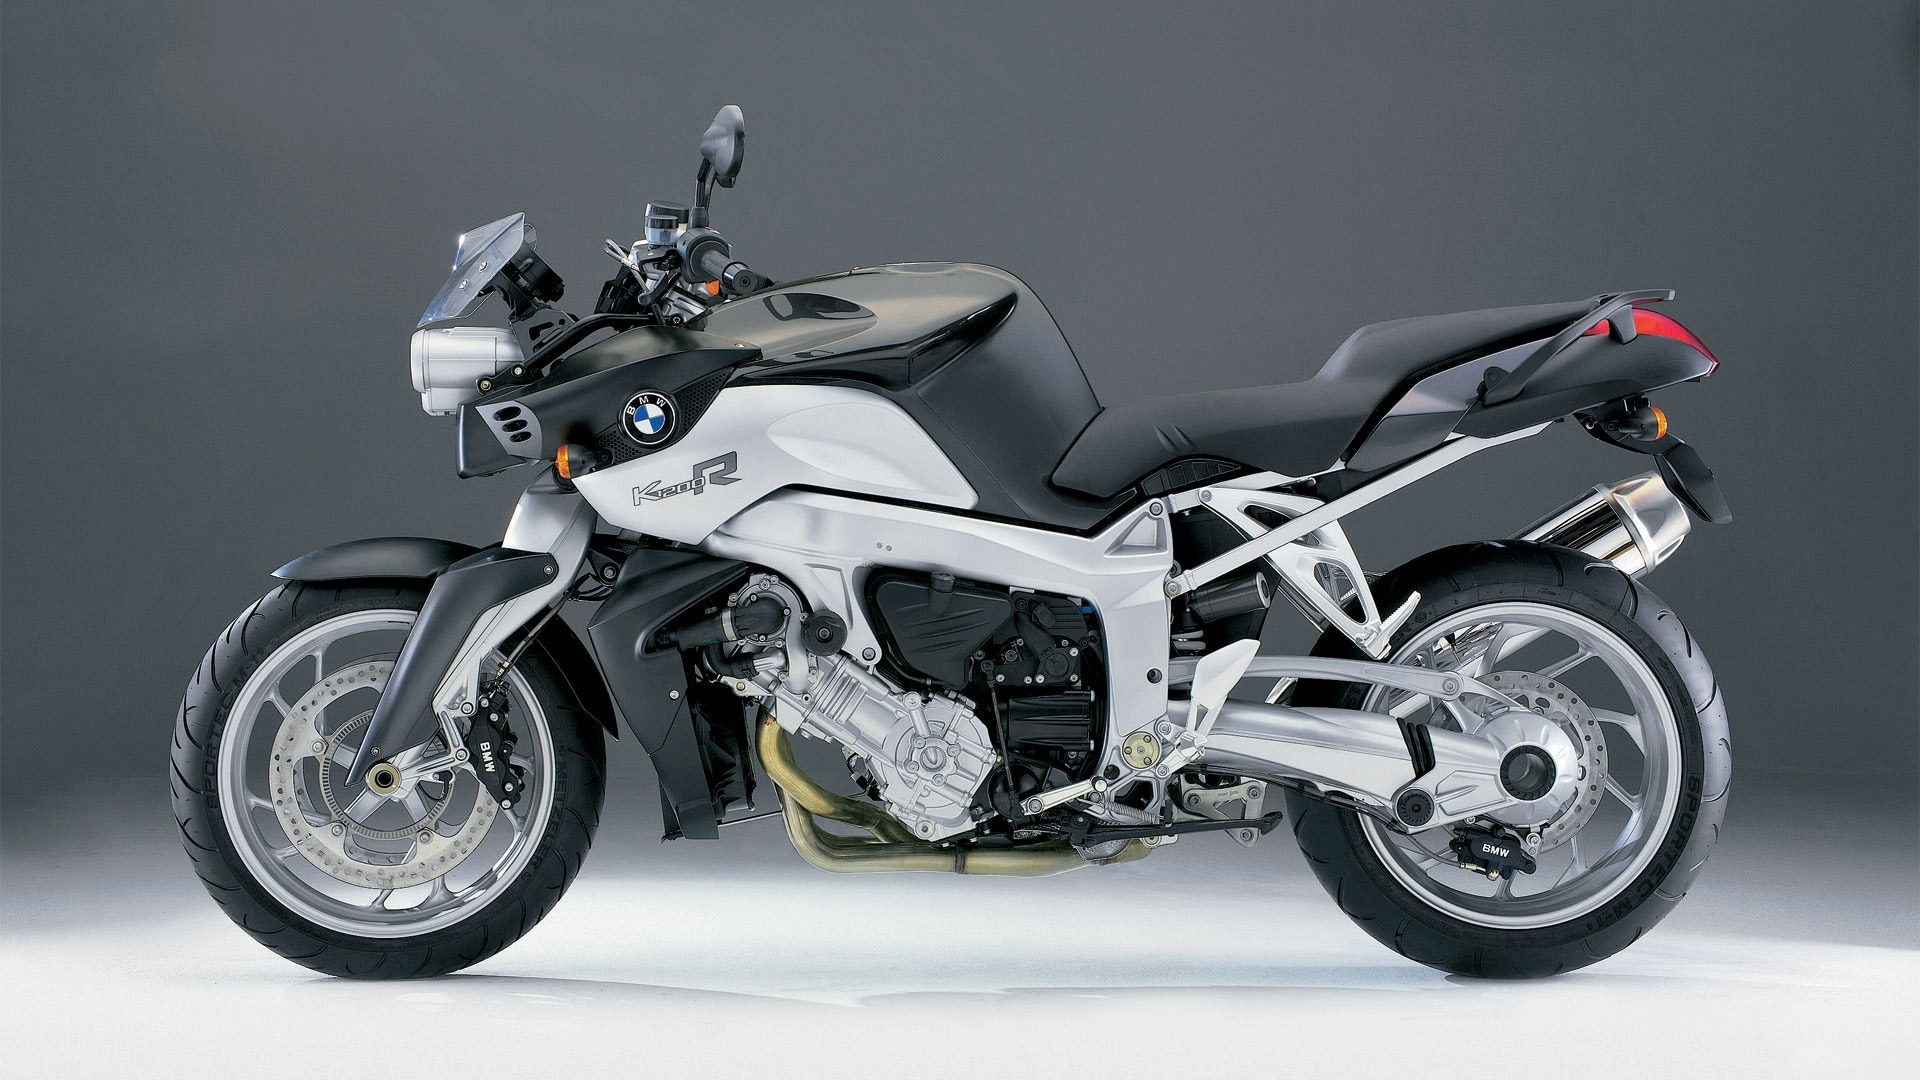 BMW K1200R for 1920 x 1080 HDTV 1080p resolution